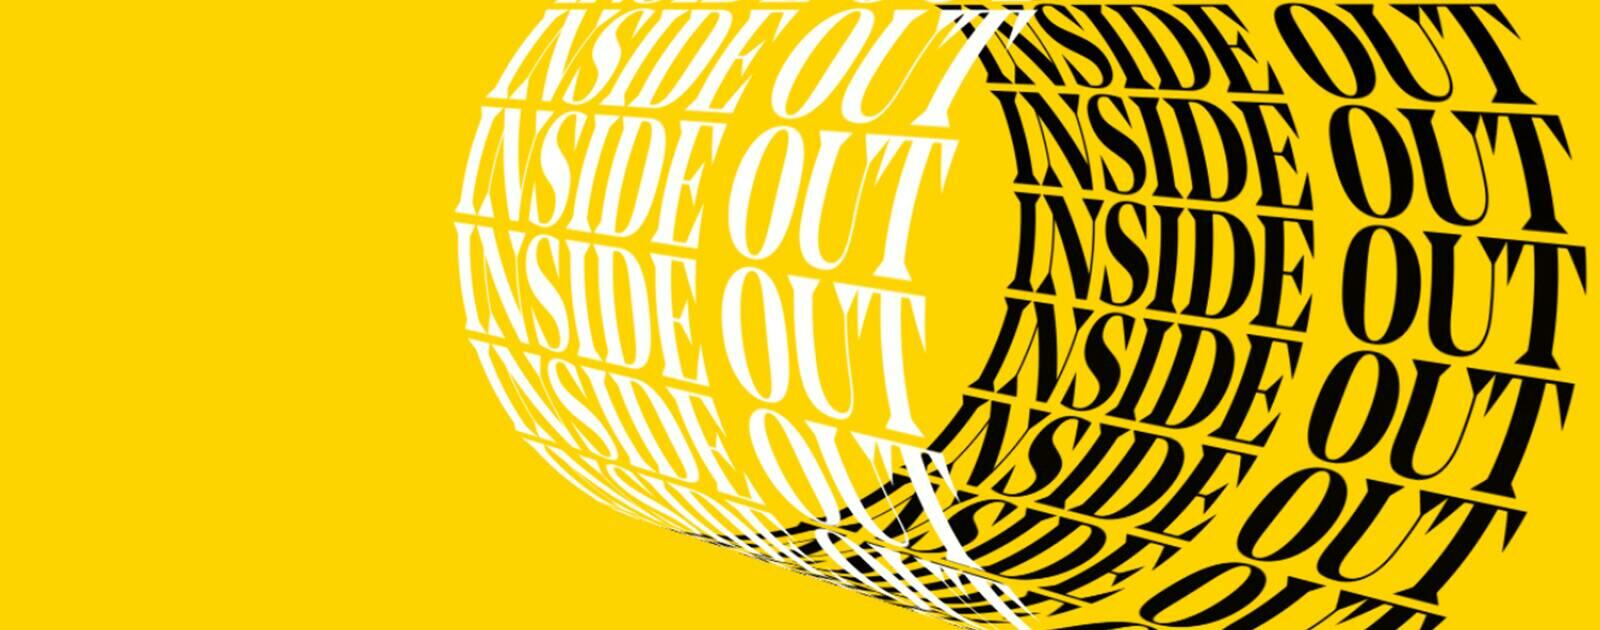 Inside Out text design